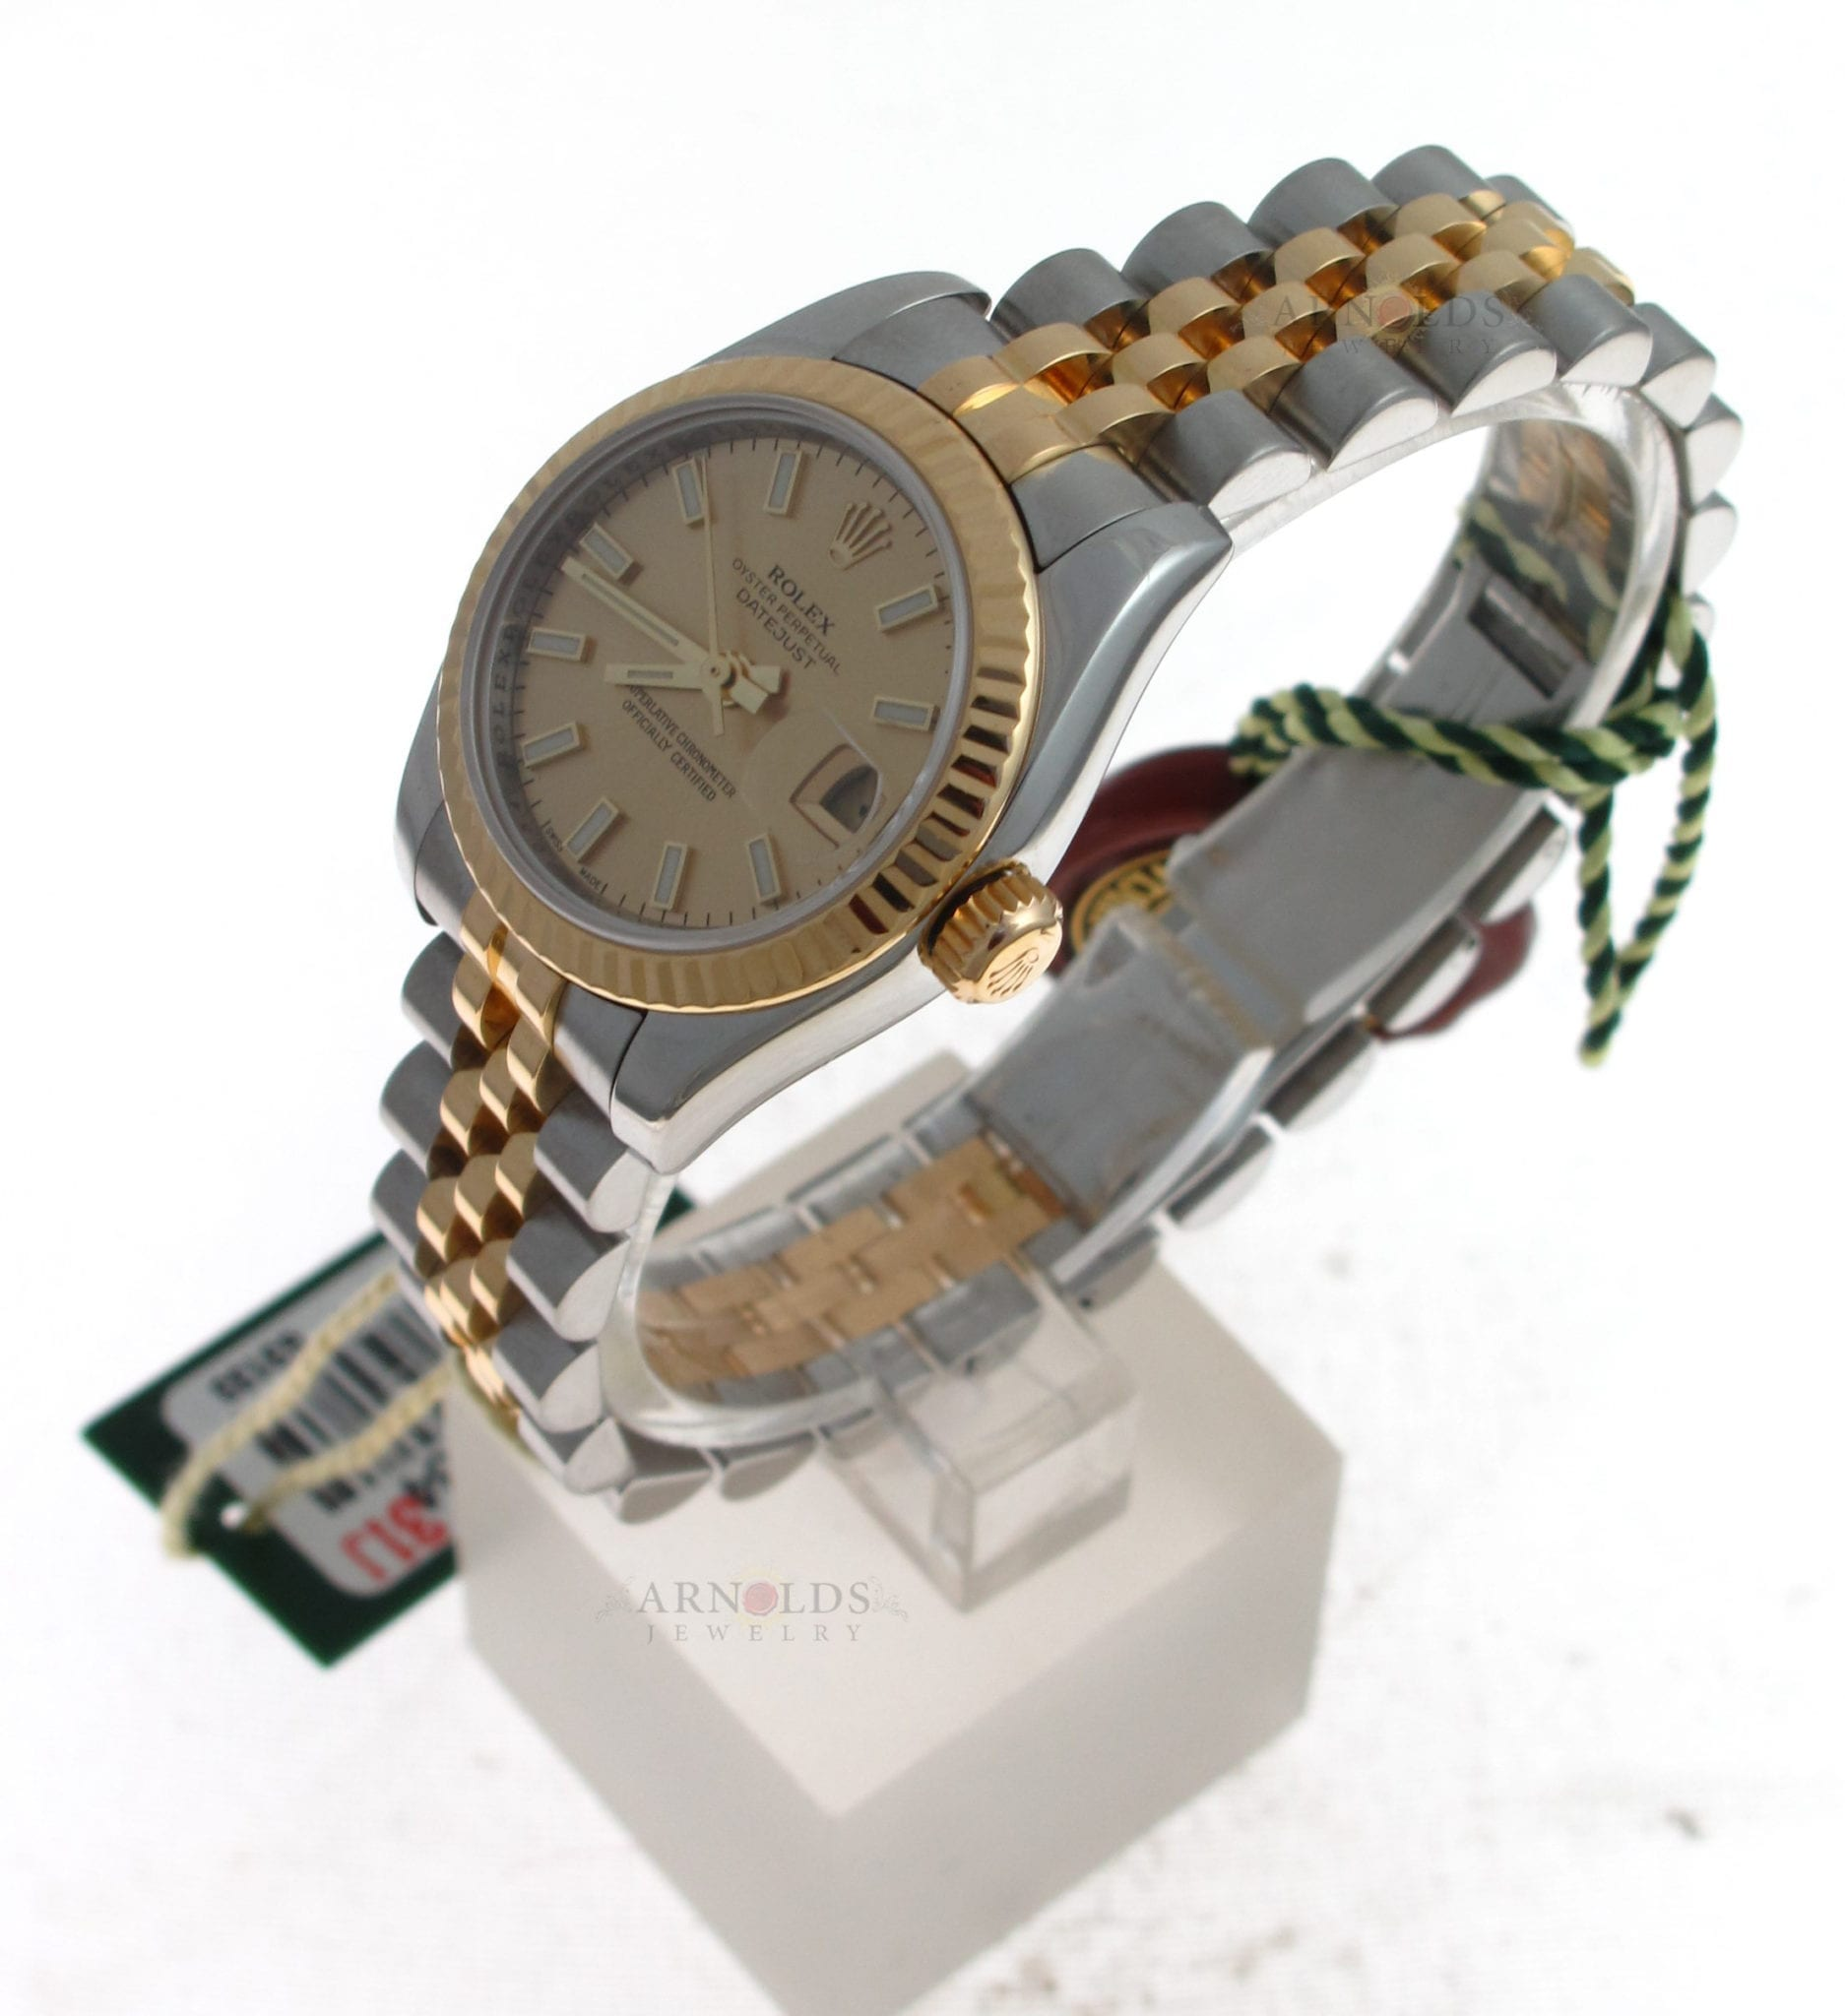 e77e5214149 Previous; Next. 1; 2; 3. Previous; Next. Pre-Owned 2008 Ladies Two Tone Rolex  Datejust Watch Champagne Stick Dial ...